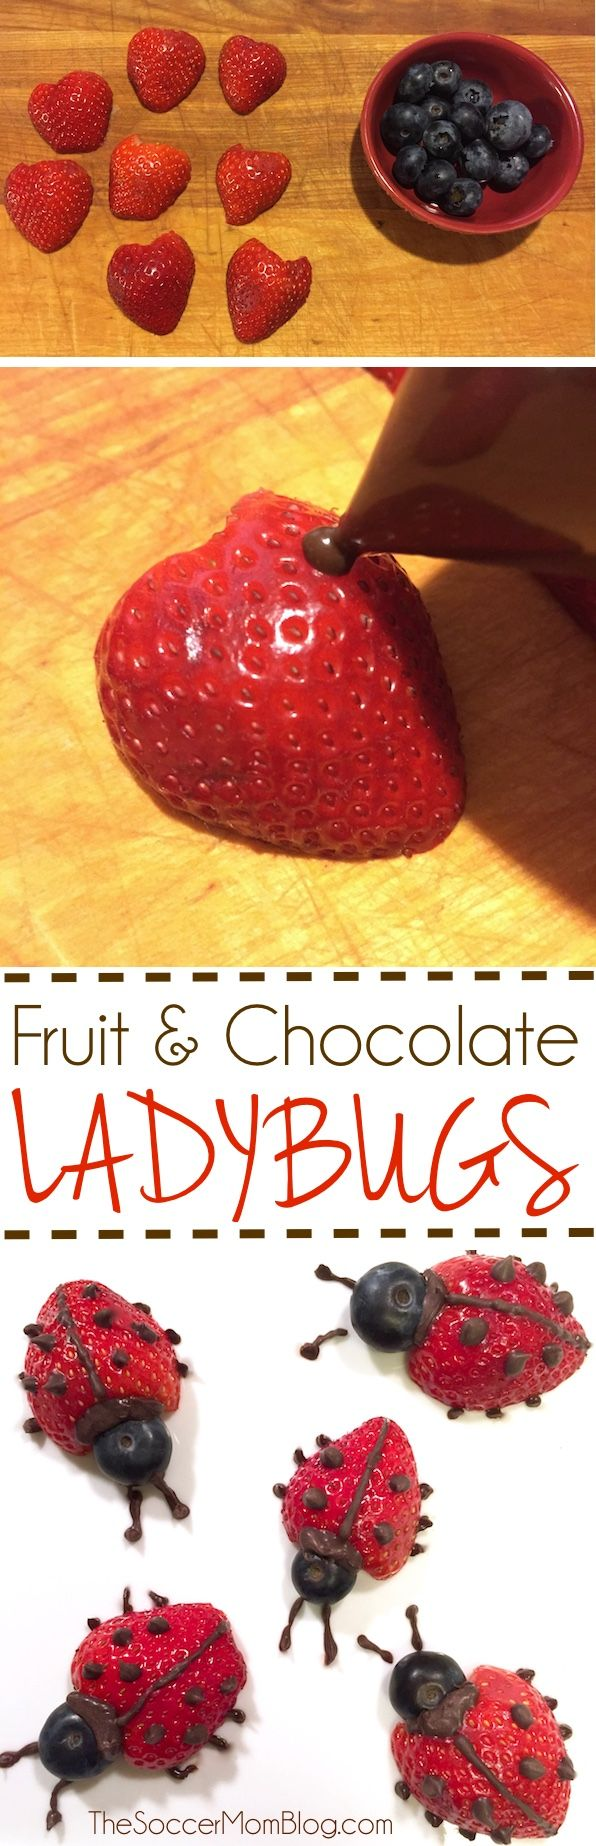 .~Fruit Ladybugs & Tips to Get Your Kids to Eat More Fruit~.